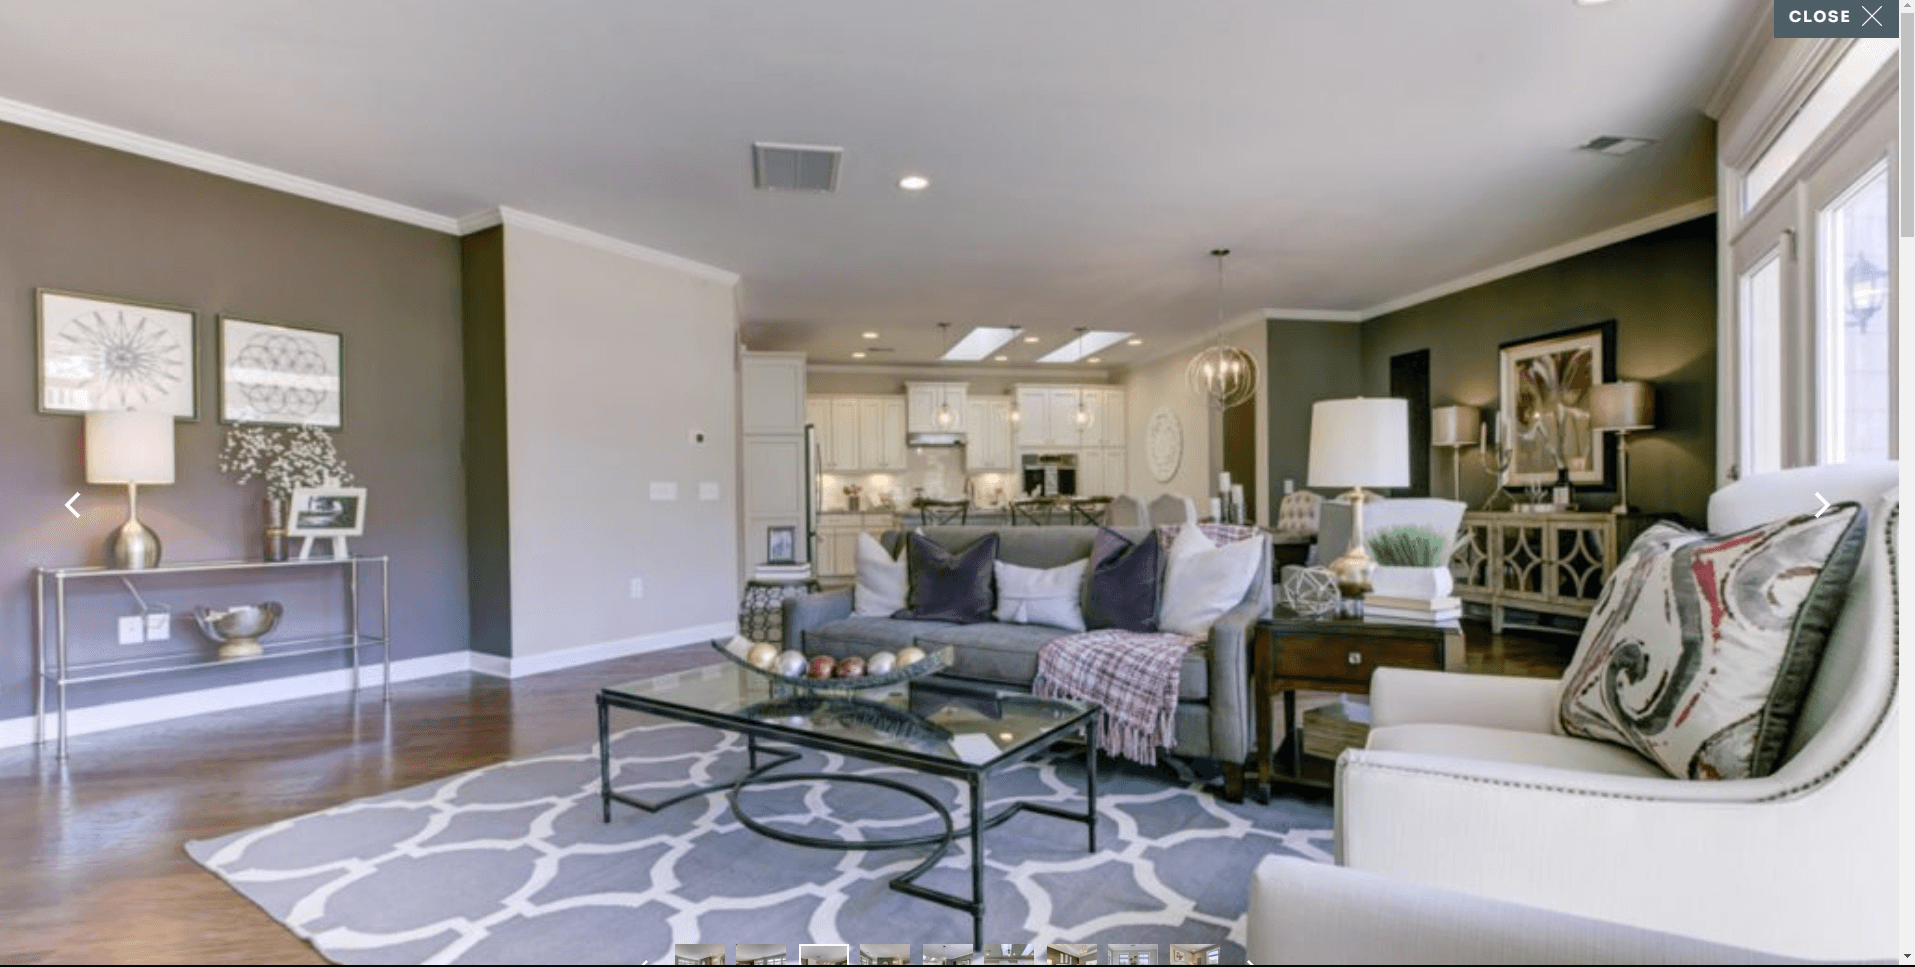 Living Area featured in the Promenade By Epcon Homes and Communities in Sandusky, OH